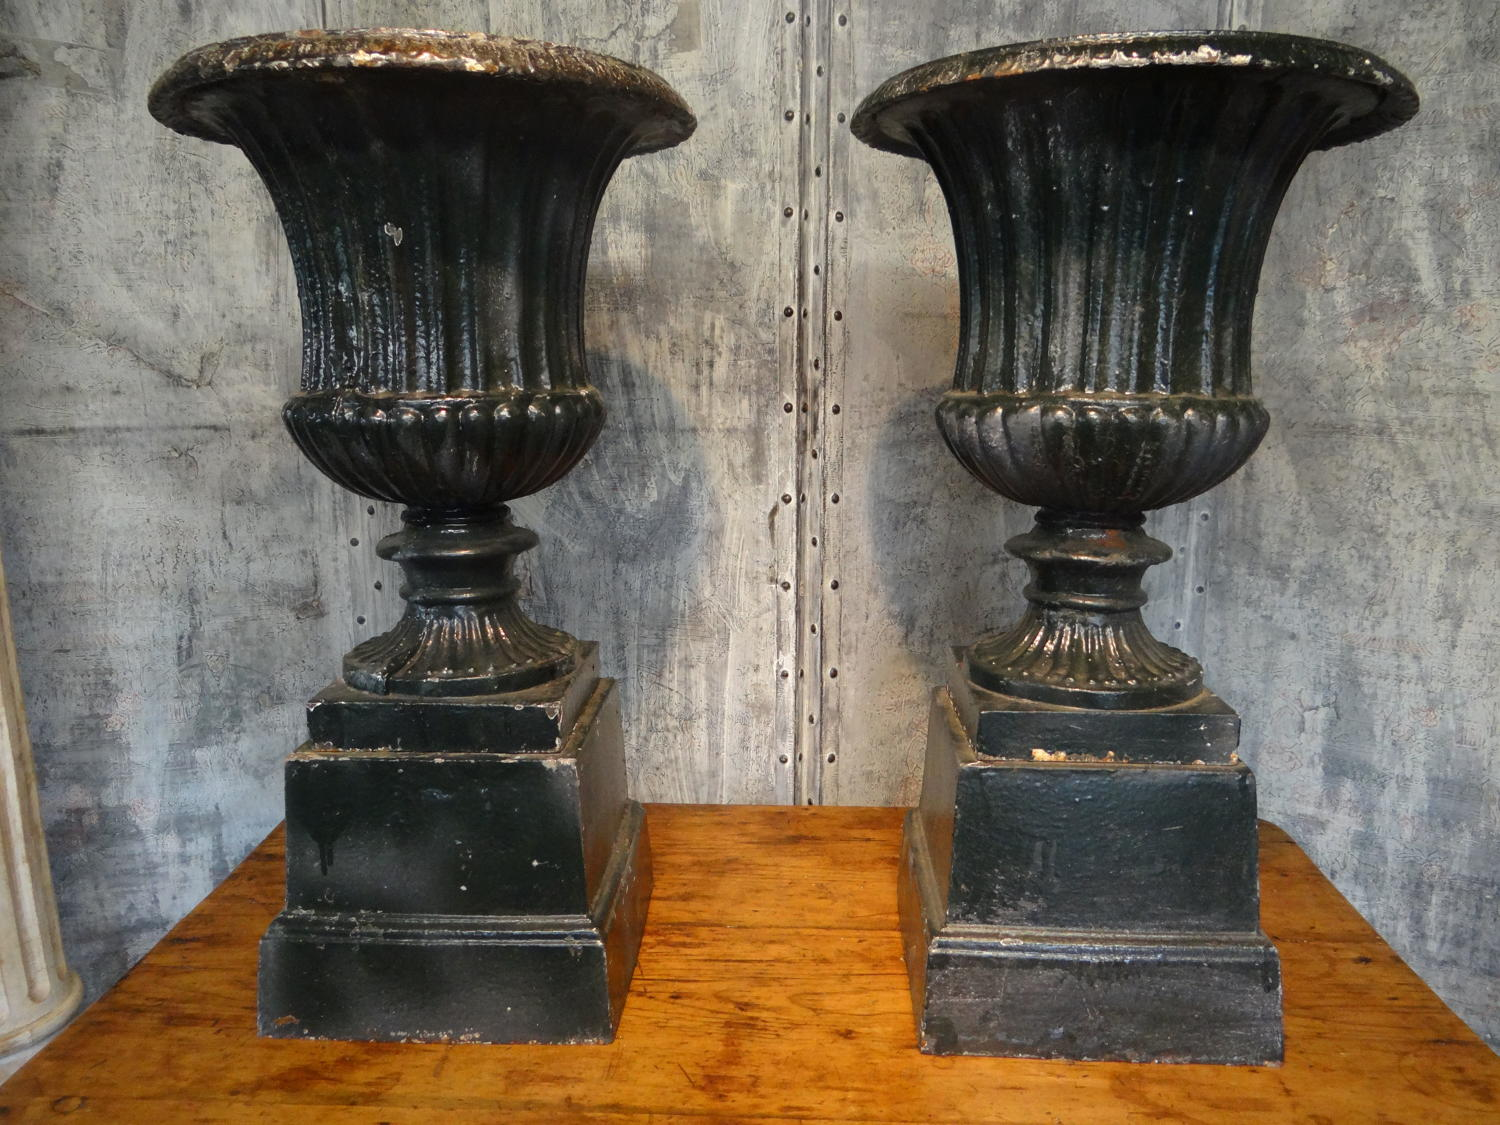 Cast iron urns on stands